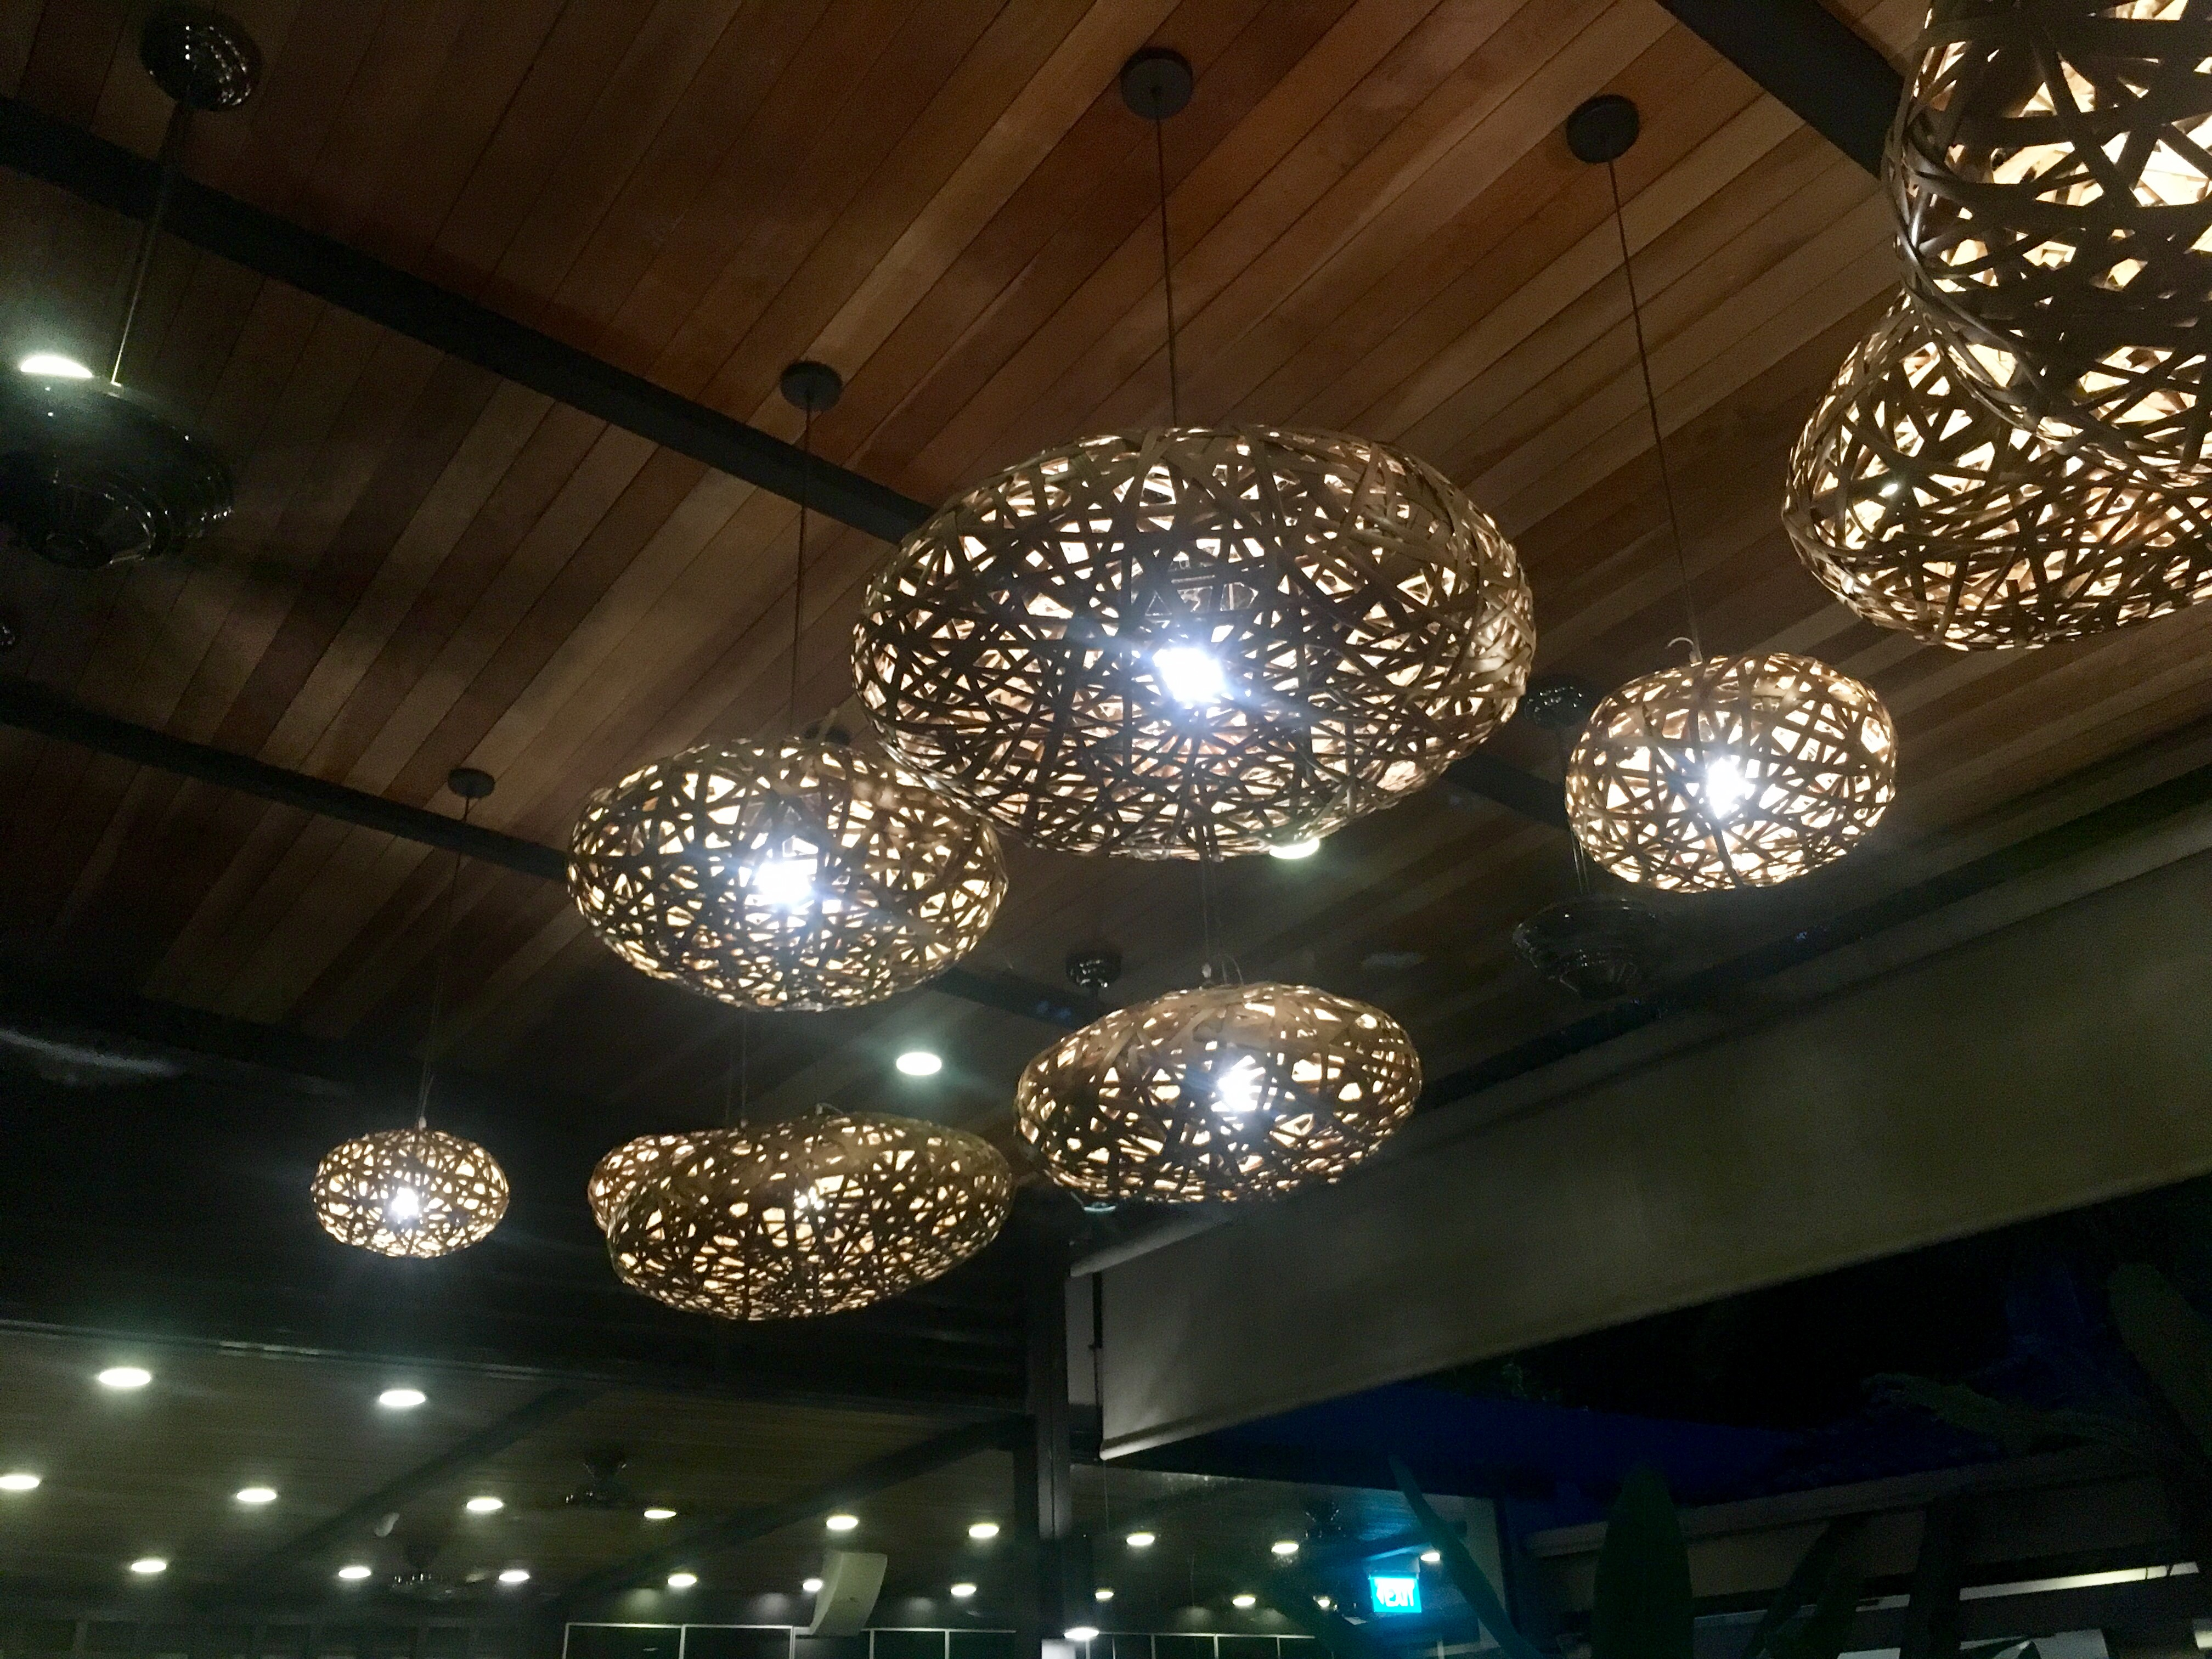 The_Halia_Ceiling_Lights